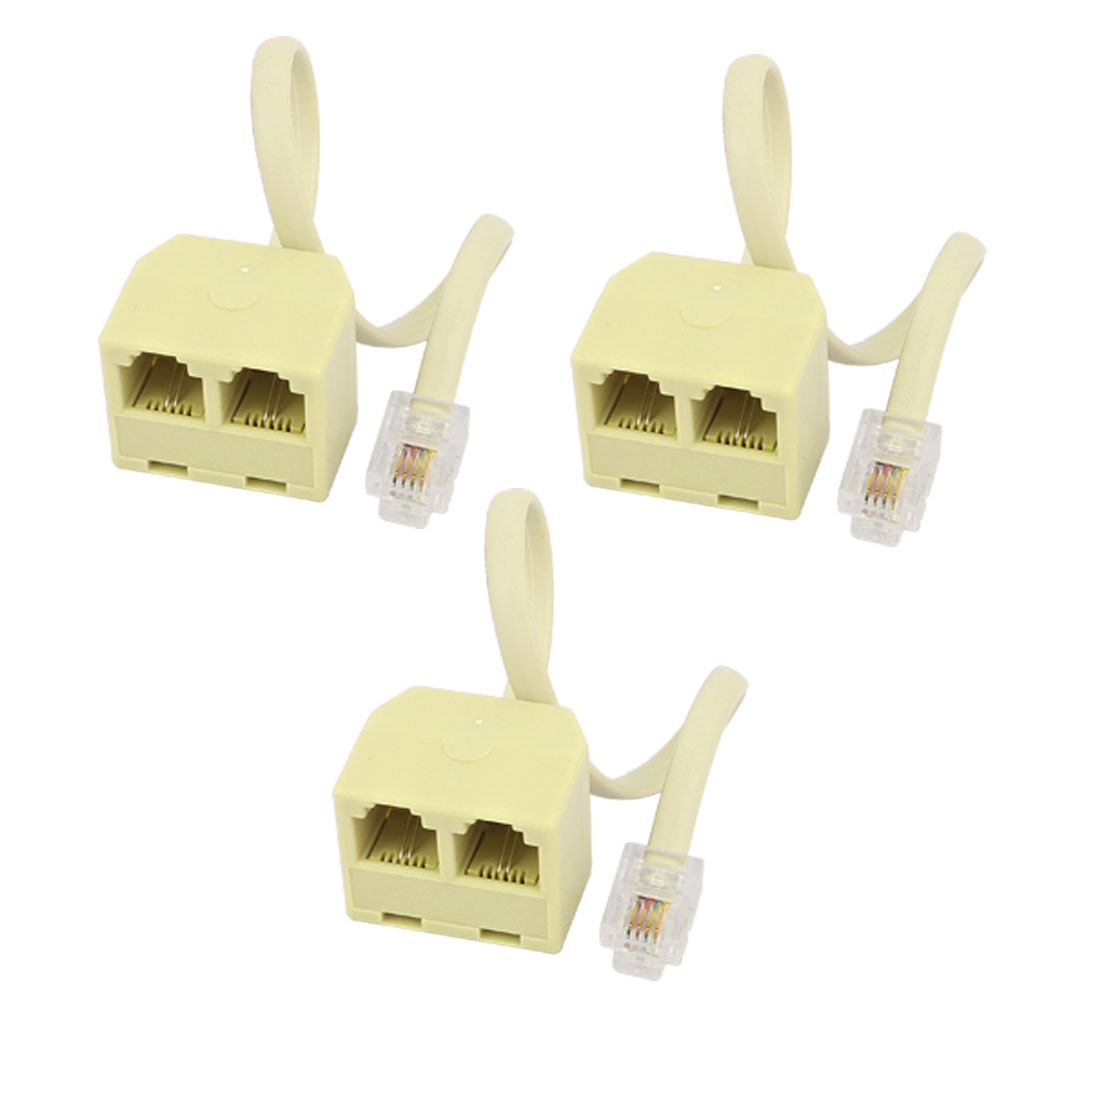 6P4C Male to Dual Female M/F Socket Extension Cable Telephone Splitter Coupler Adapter 3pcs